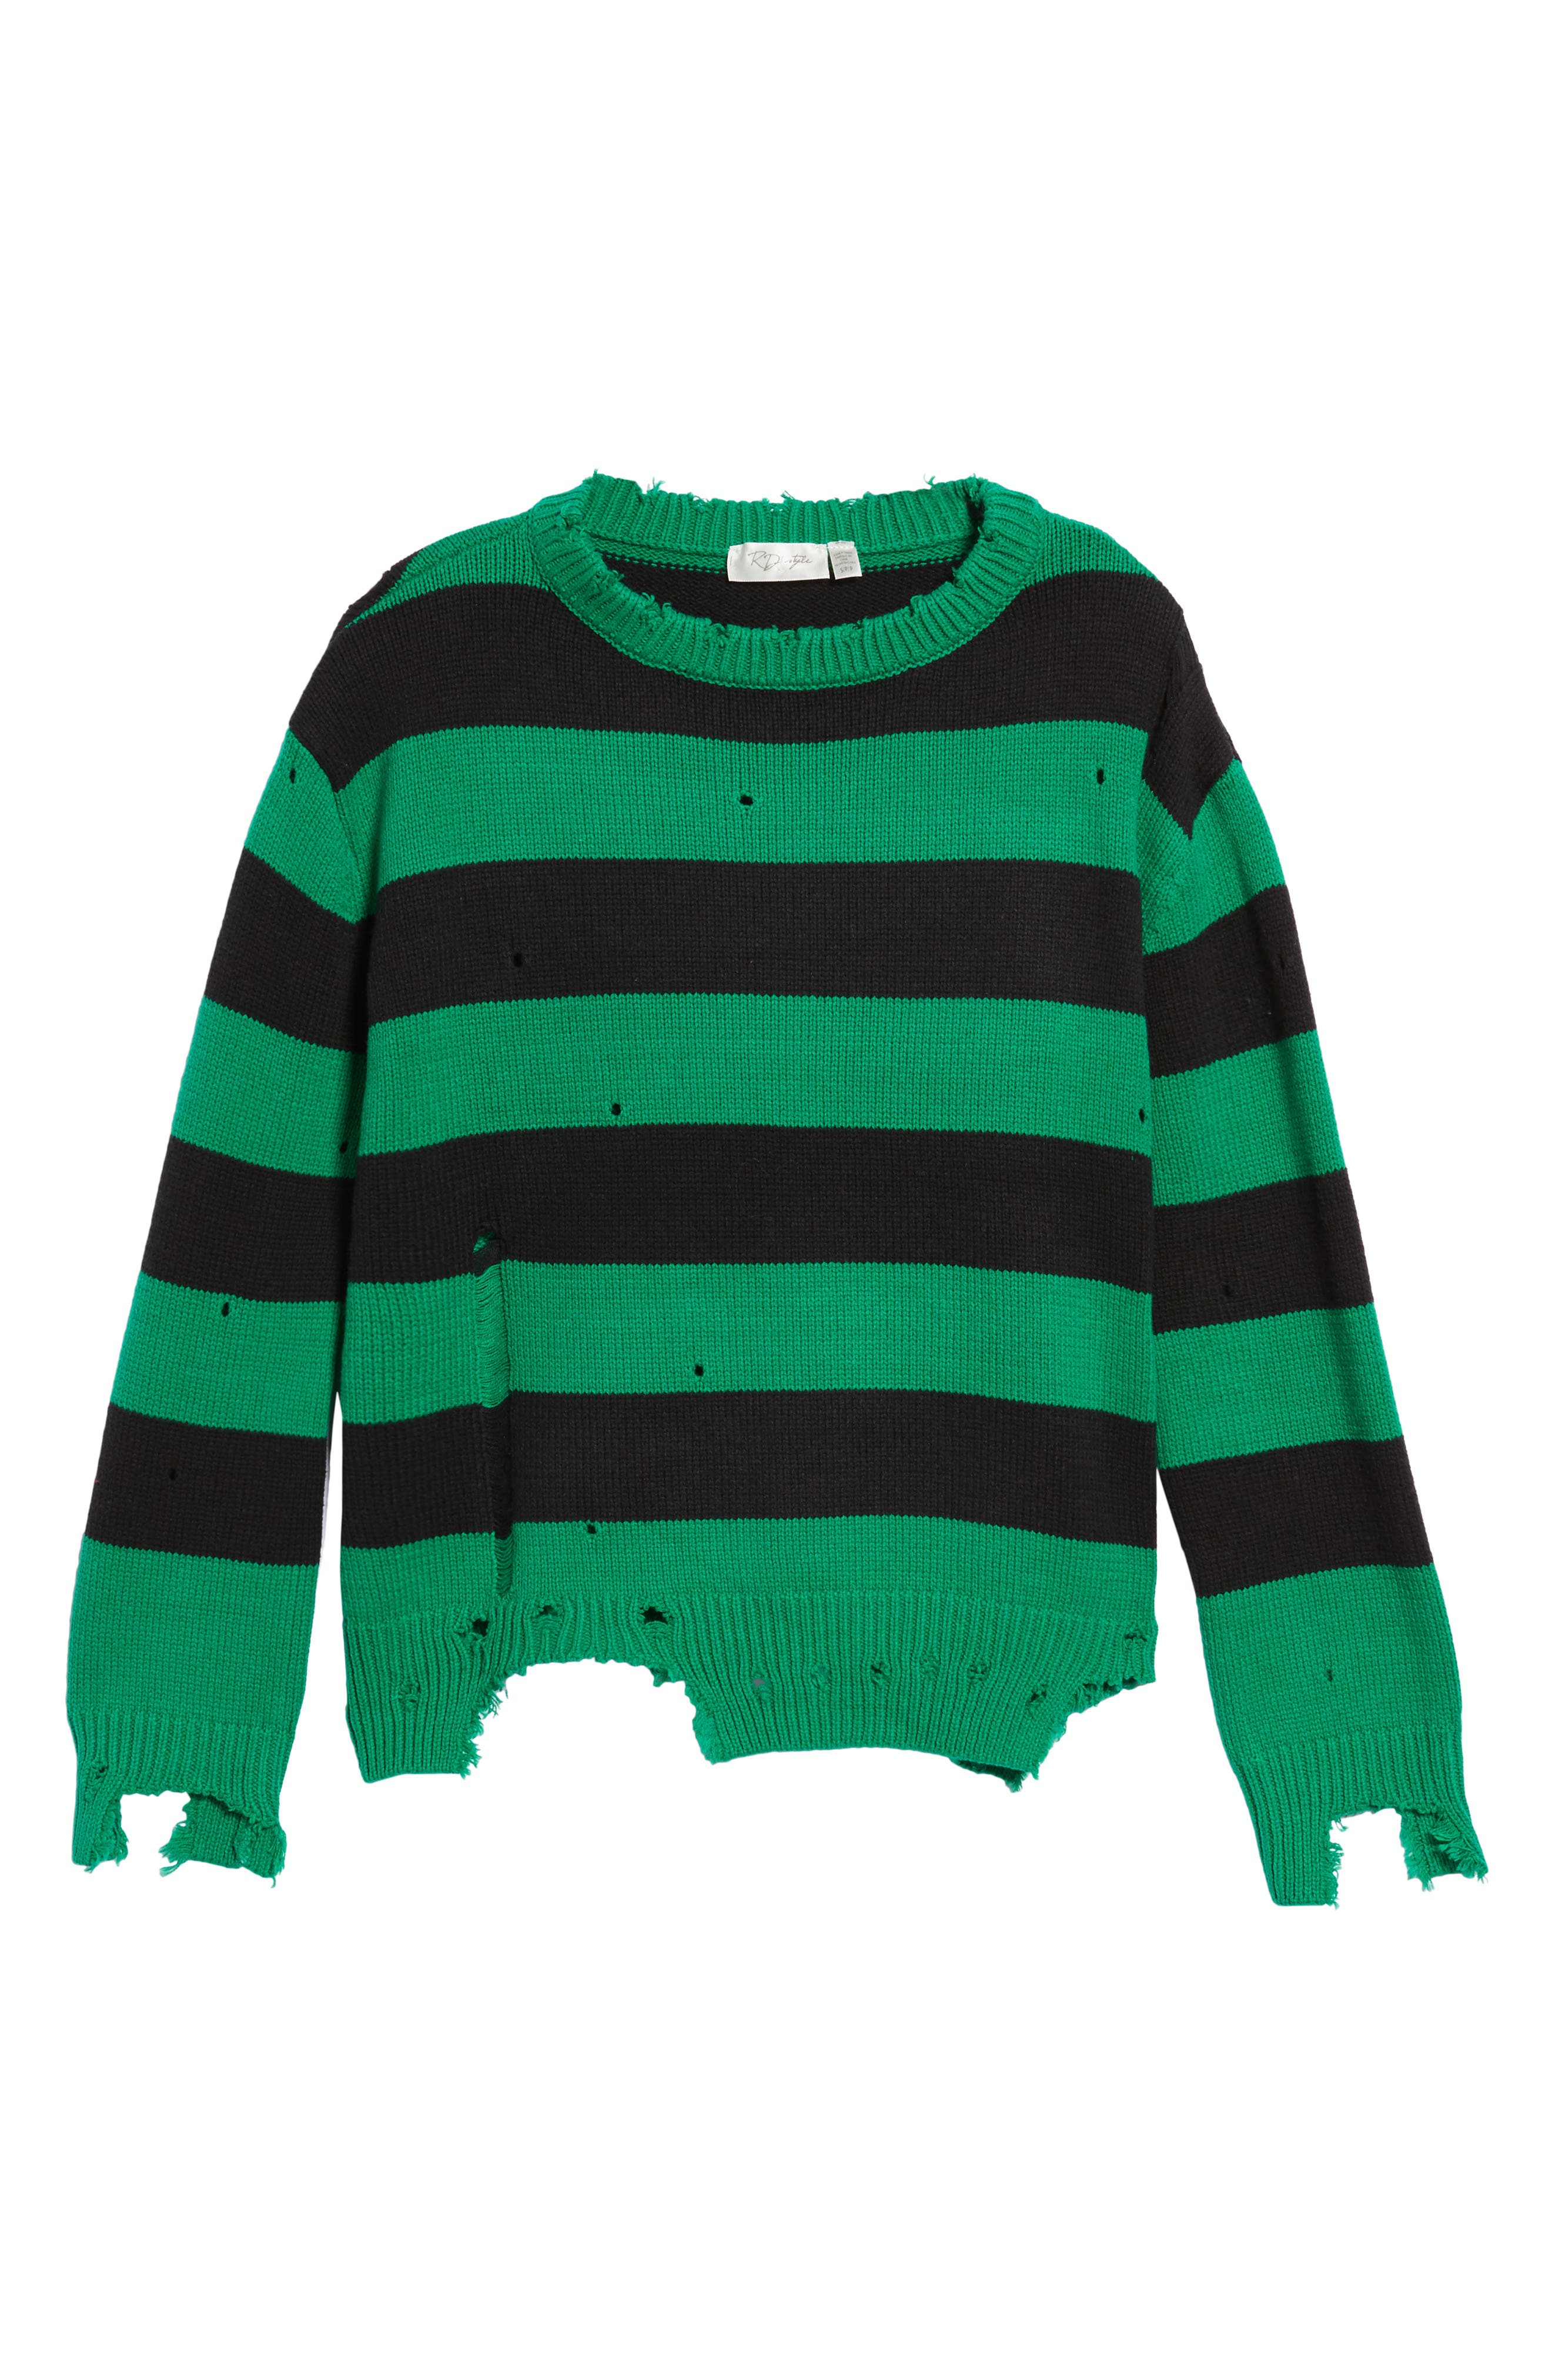 Destroyed Stripe Sweater,                             Alternate thumbnail 6, color,                             300